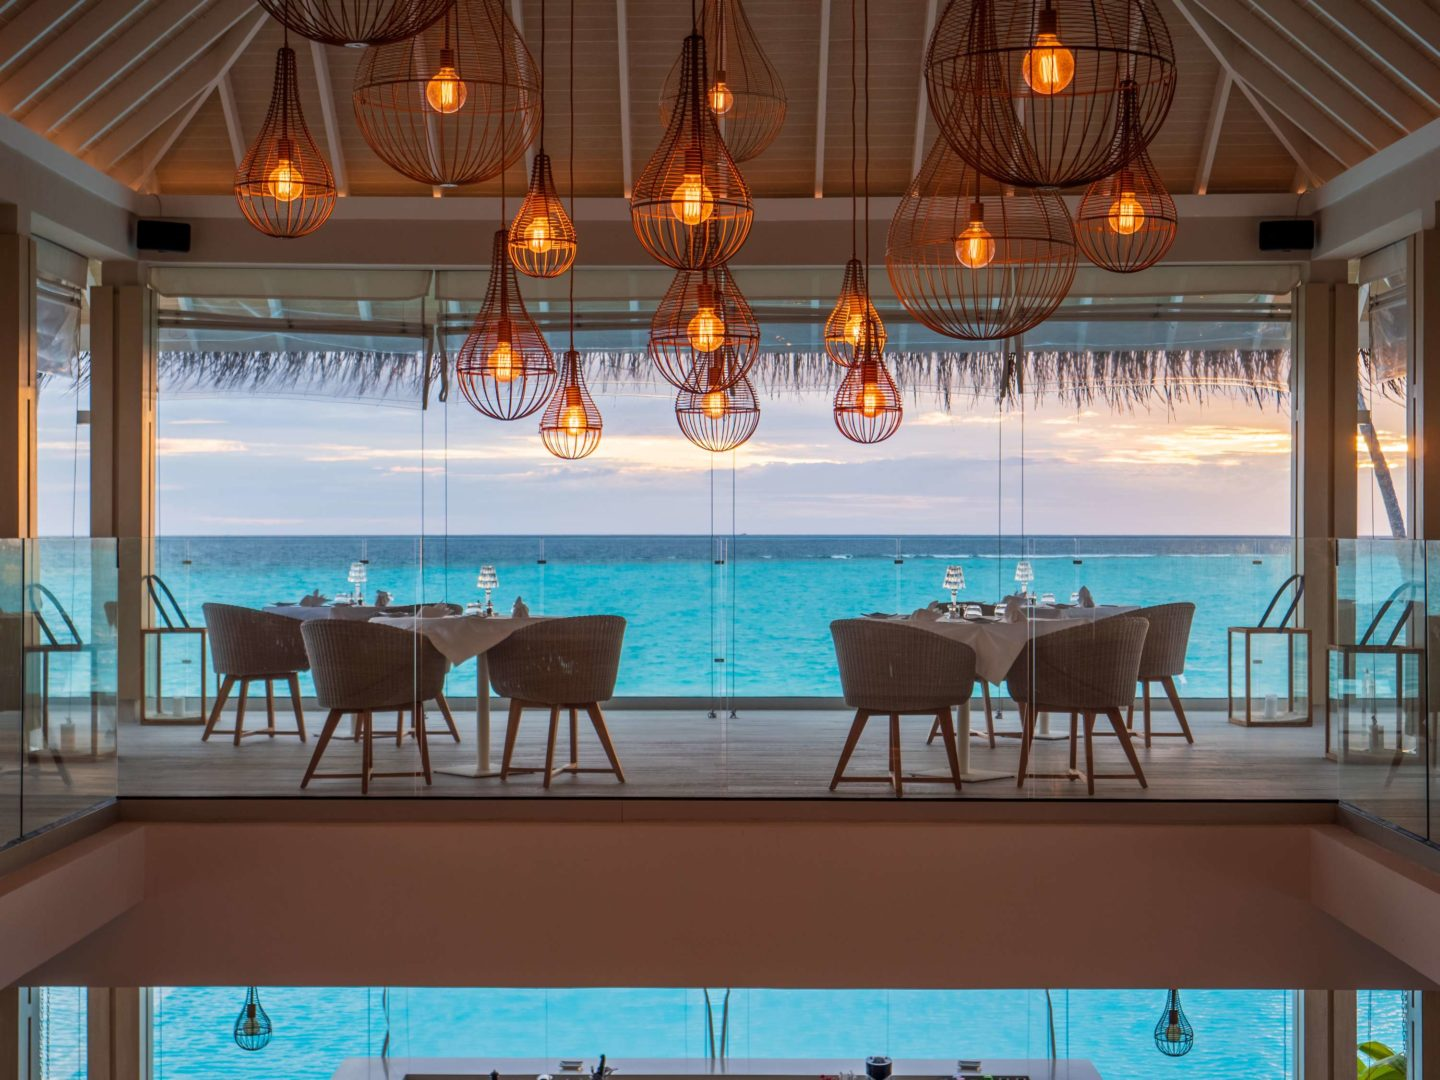 Gusto Restaurant Baglioni Resort Maldives